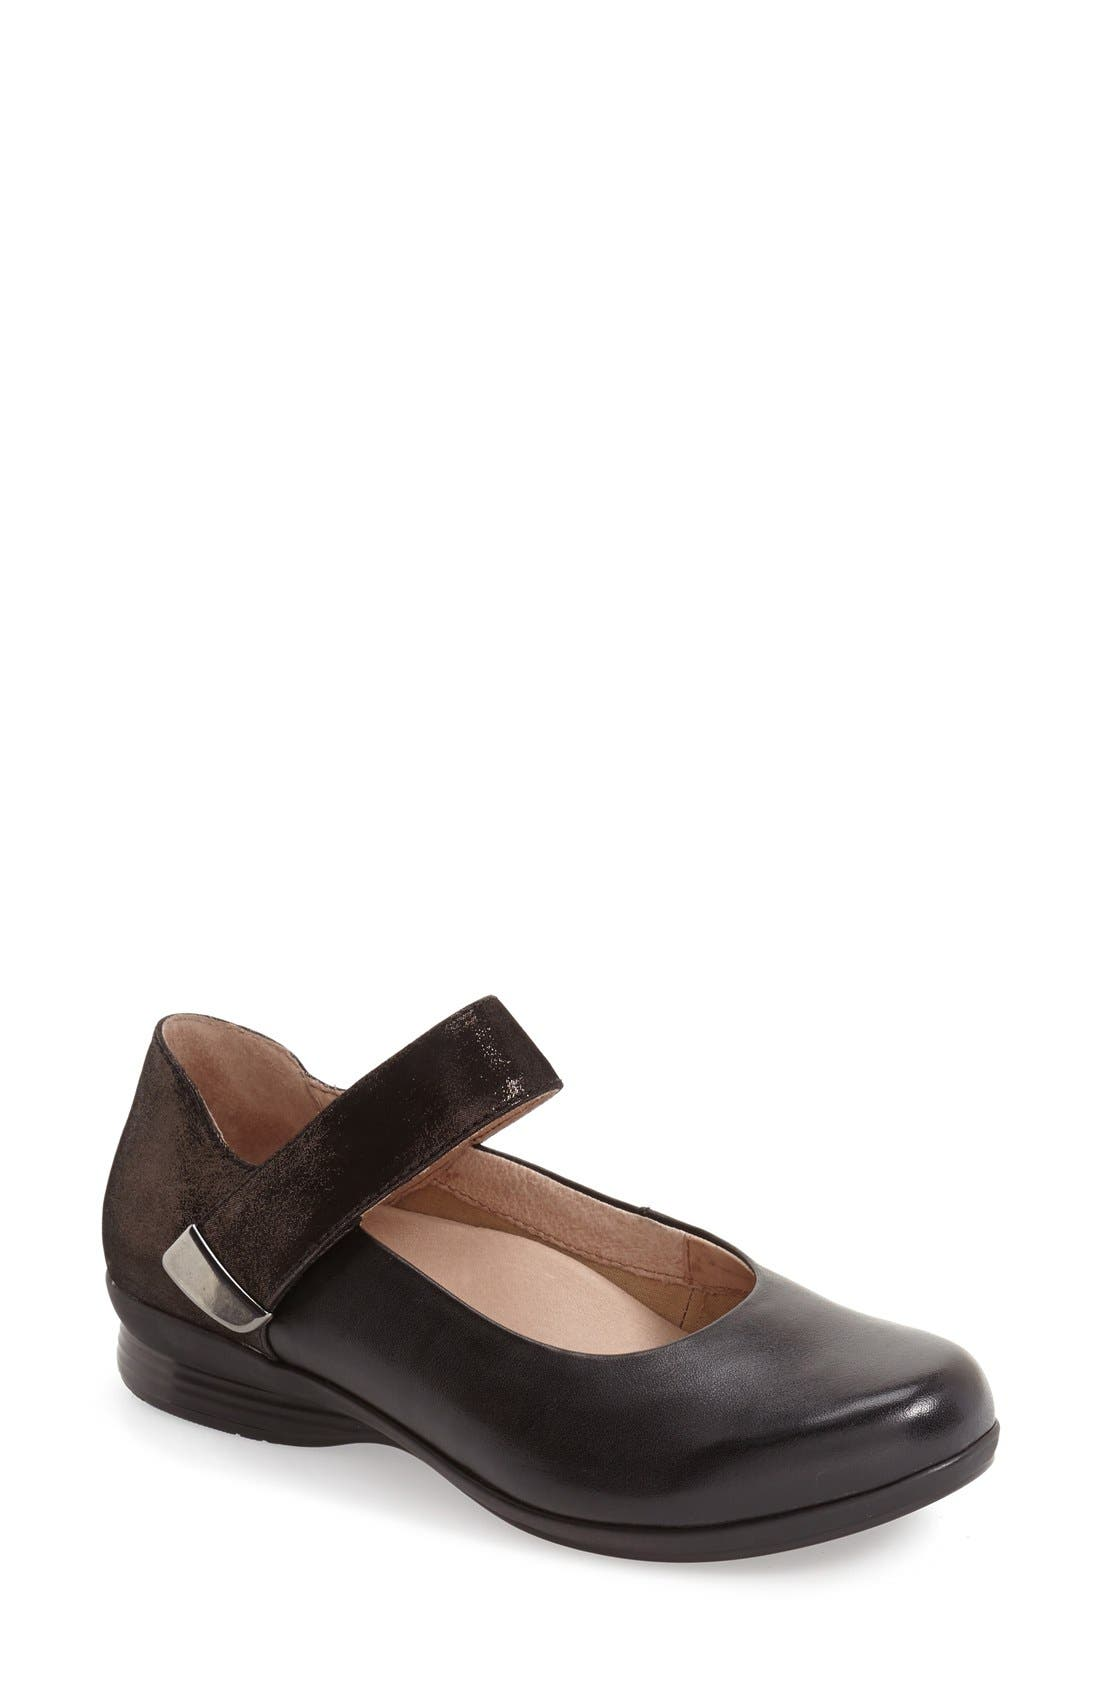 Dansko 'Audrey' Mary Jane (Women)